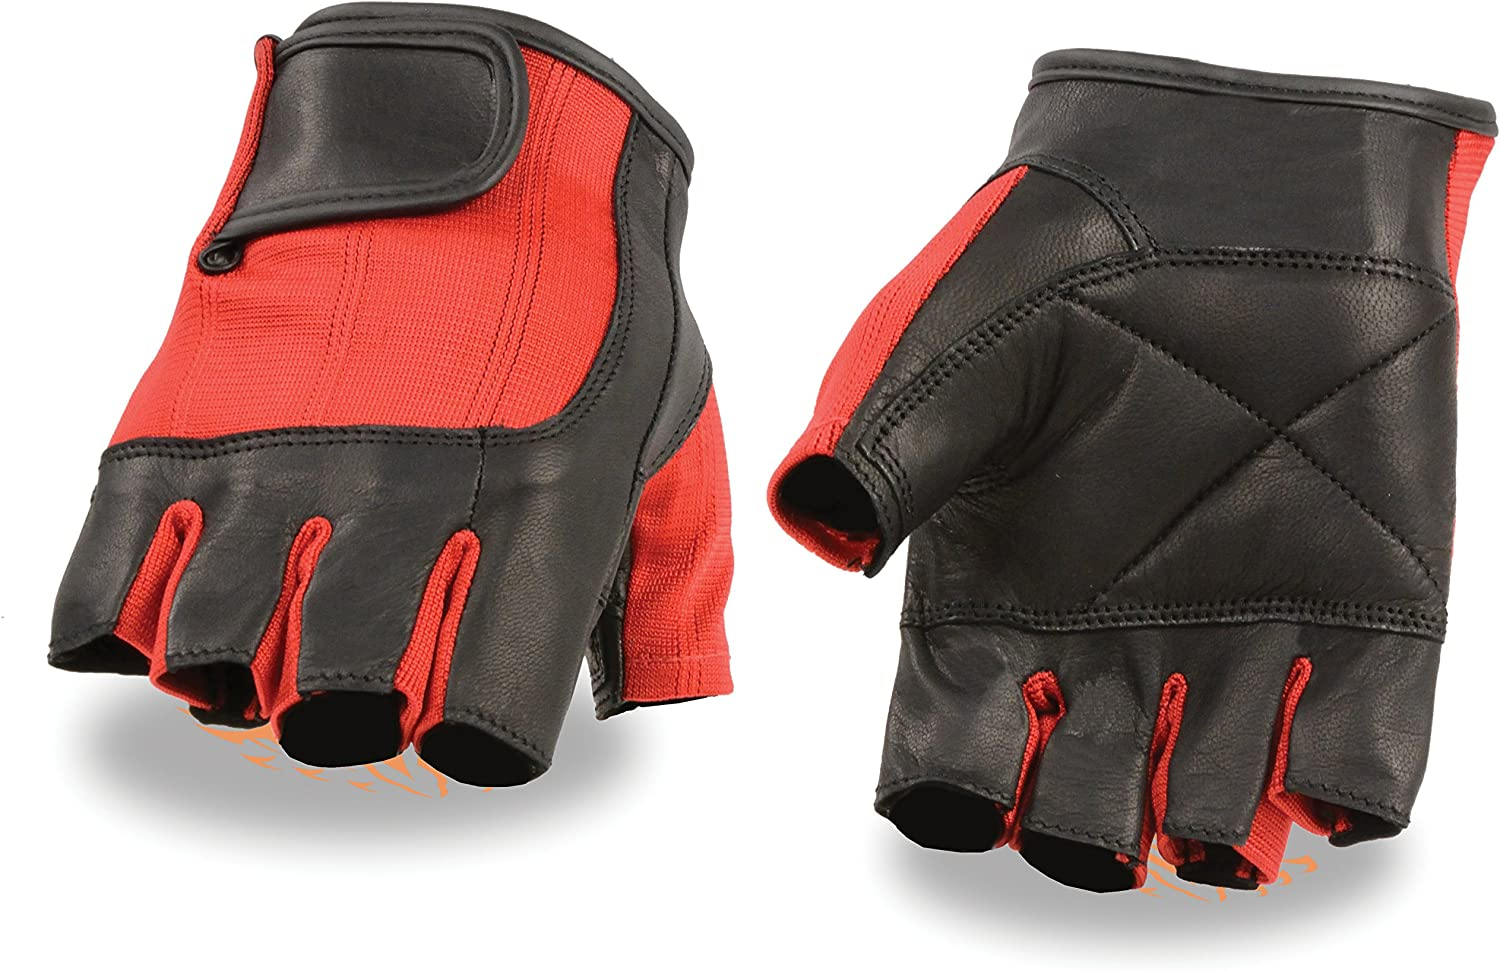 Insane Bikers - At the price Men's Leather Fingerless Gloves Combo Red Mesh Raleigh Mall